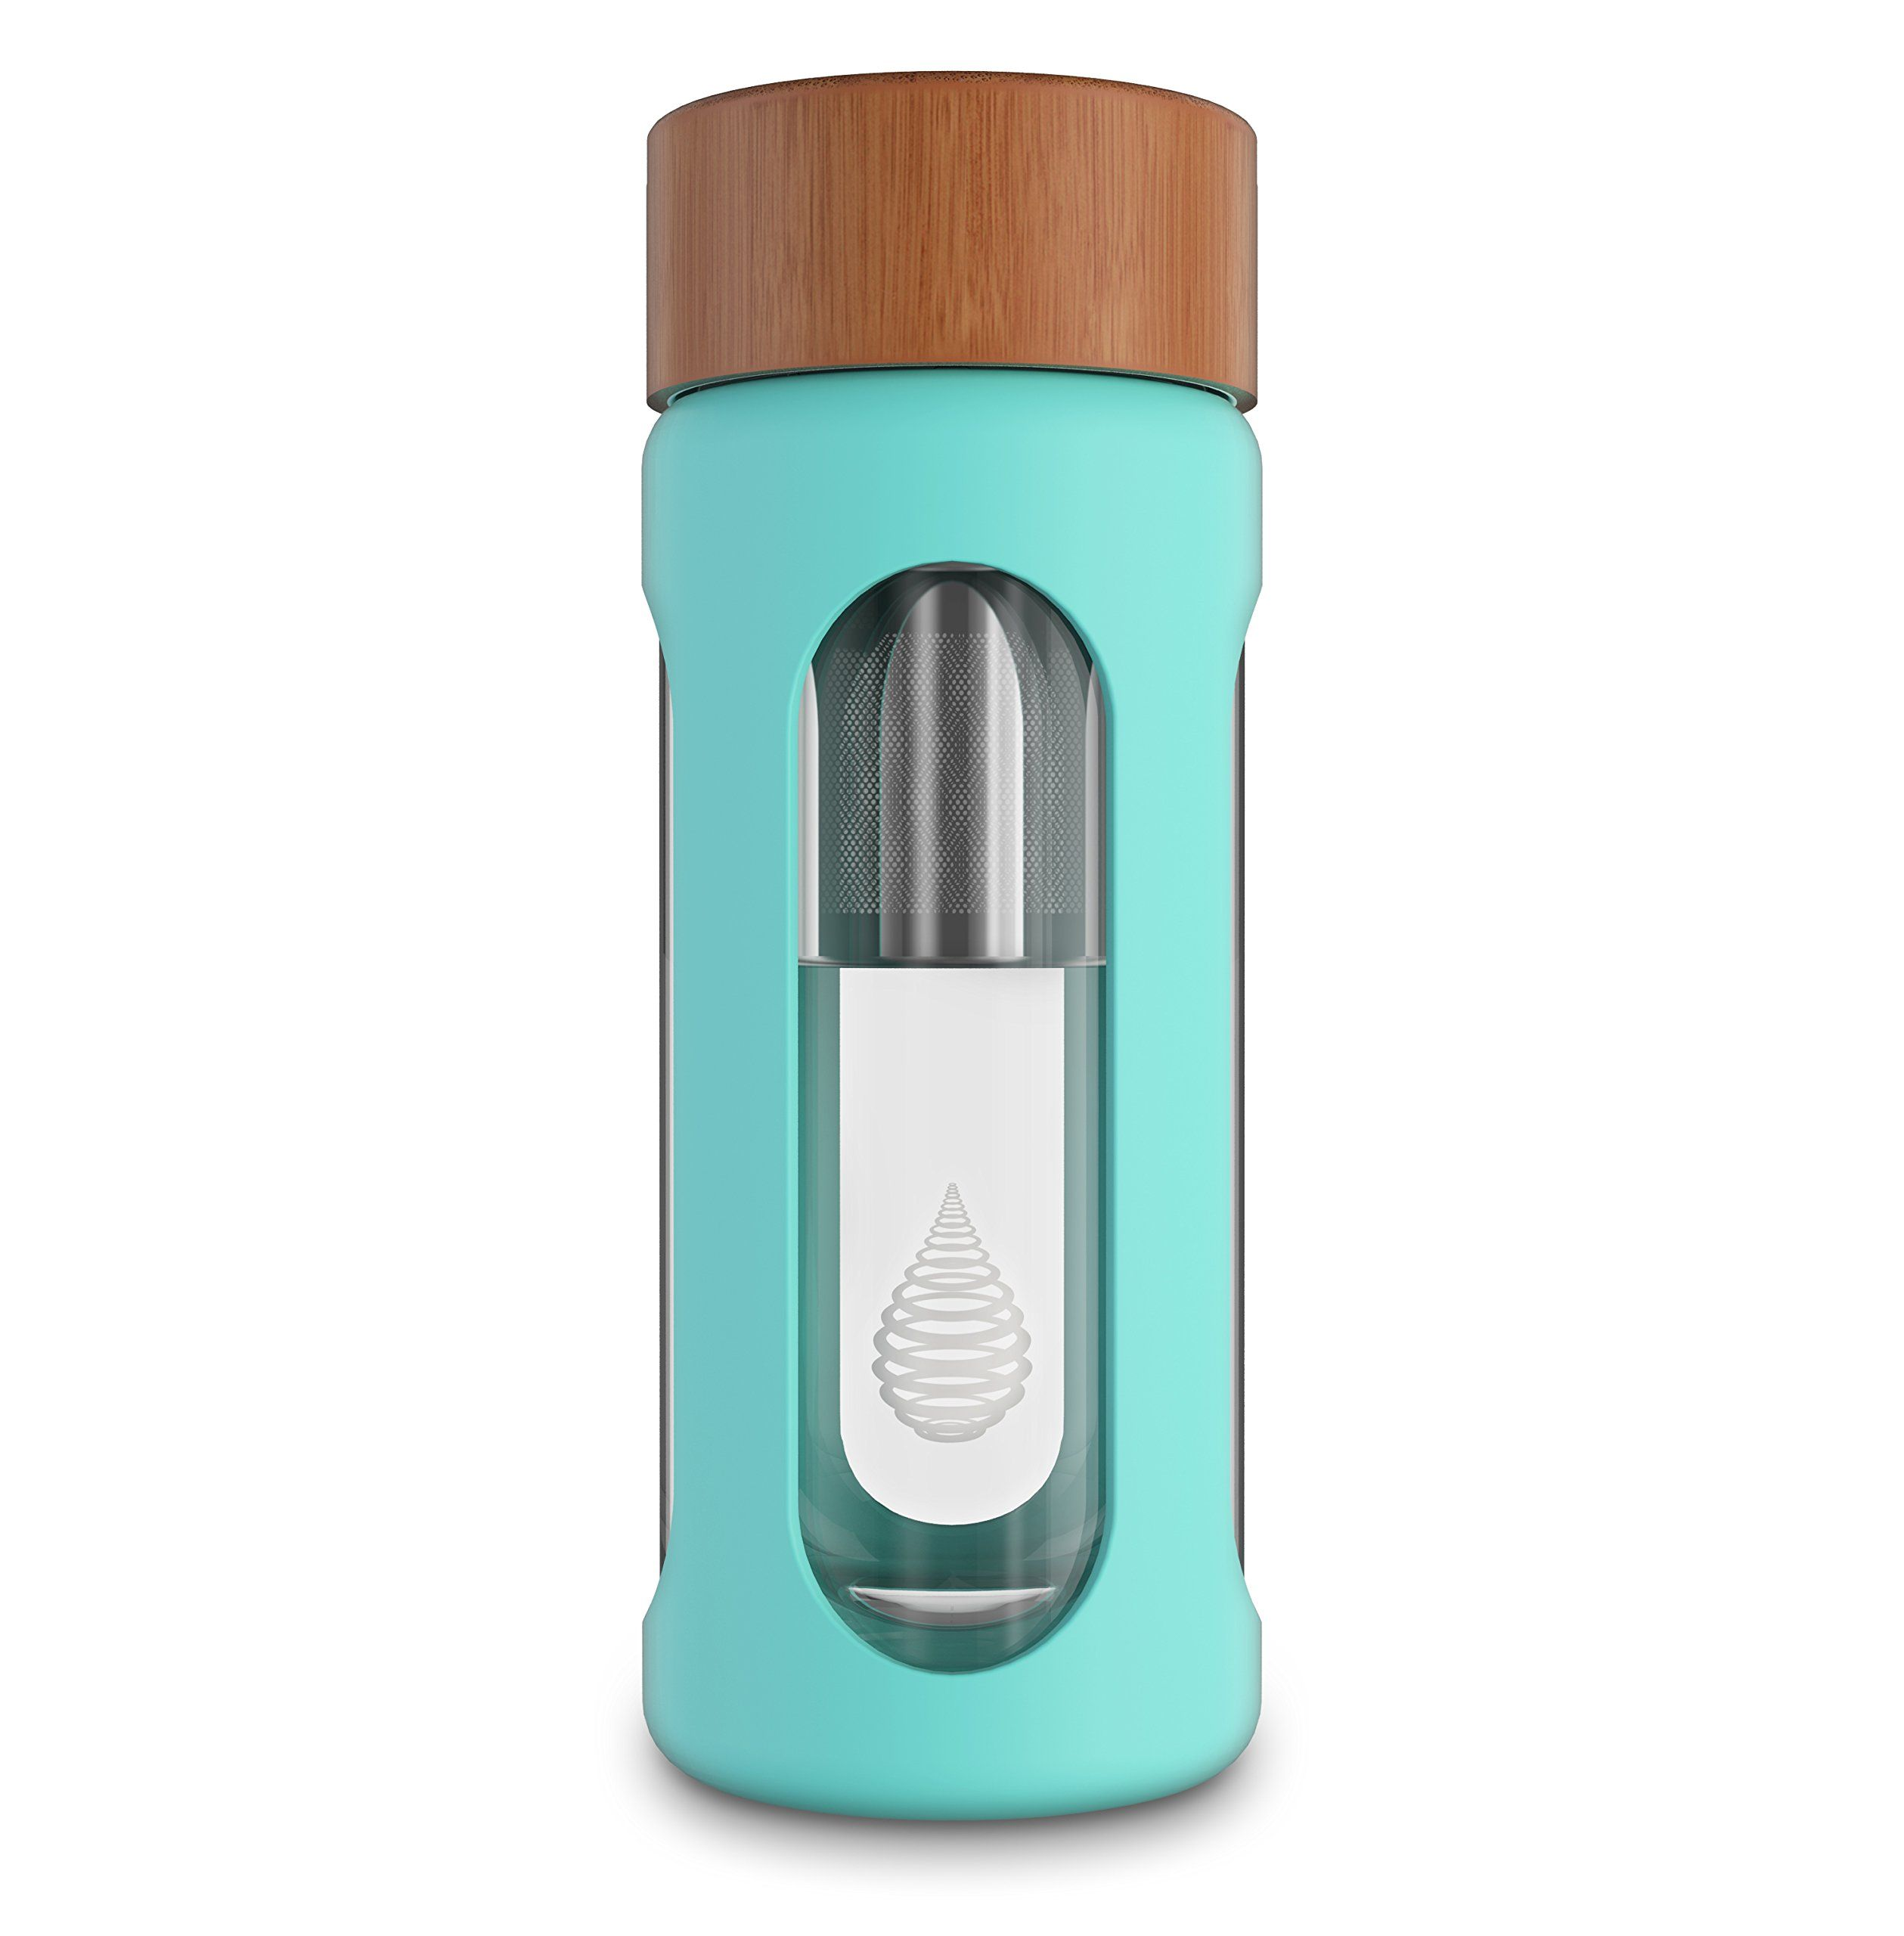 Increase pH pH HYDRATE Glass Alkaline Water Bottle Remove Heavy Metals /& Chlorine 400 ml Water Bottle Filter Portable Filtered Water Bottle Ionizer Reduce Fluoride